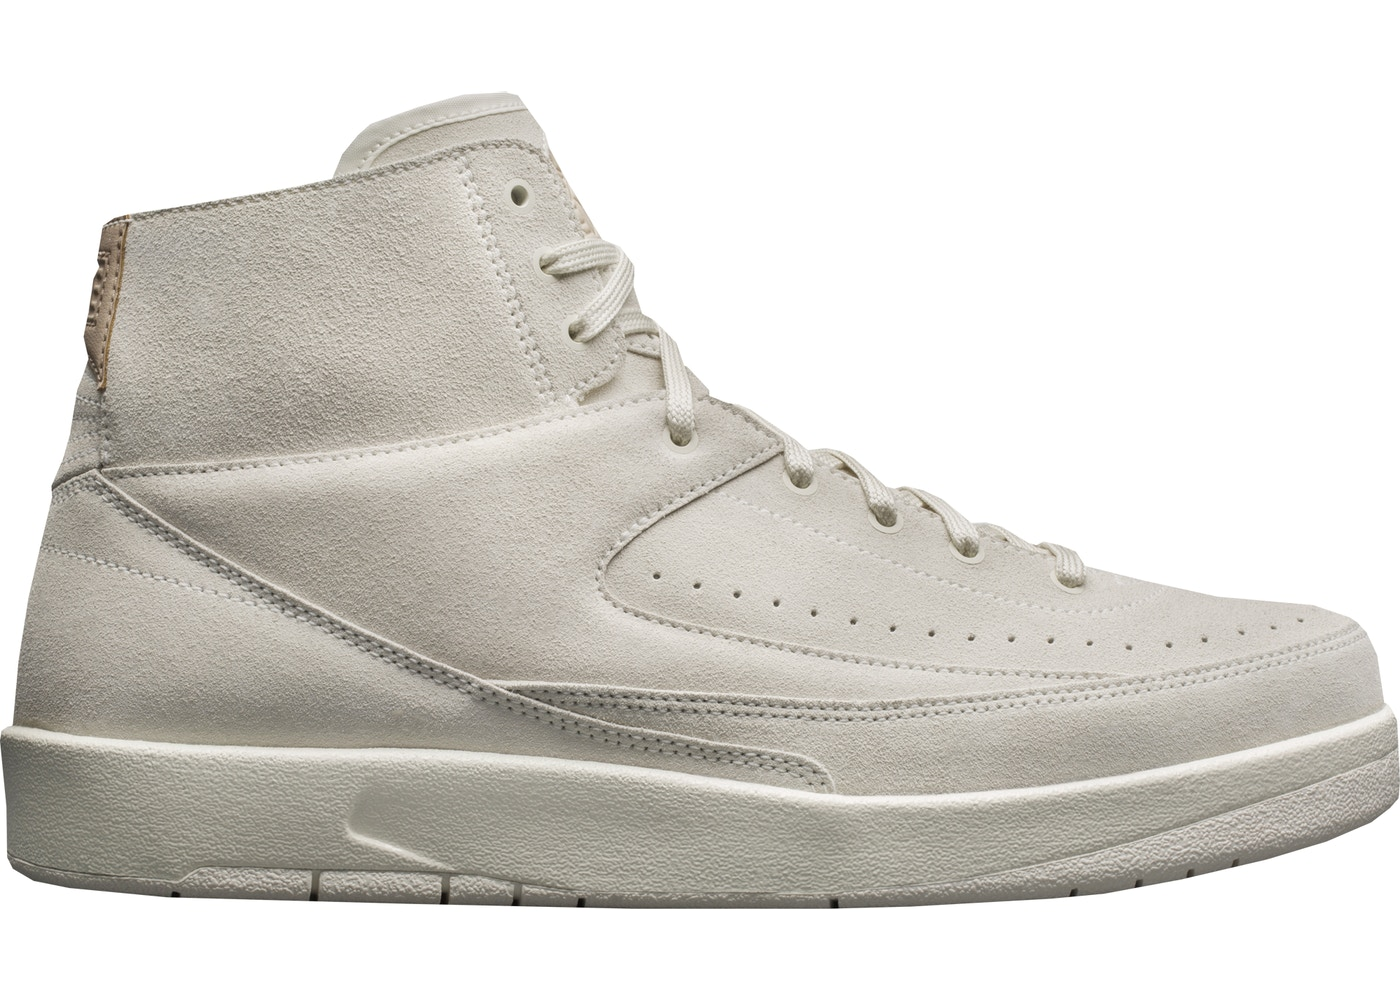 finest selection 264a3 29569 Jordan 2 Retro Decon Sail